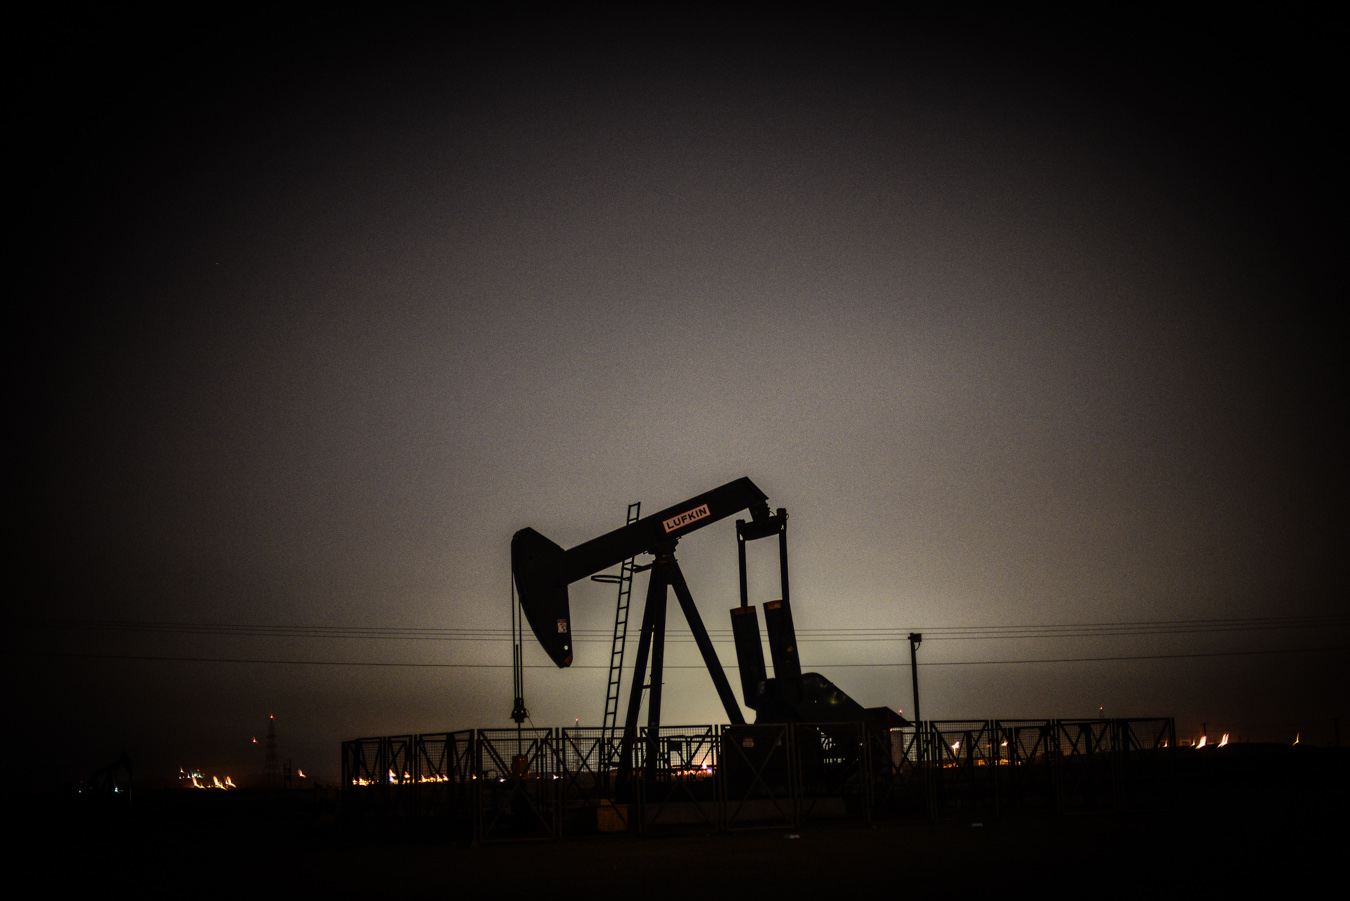 An oil rig at night, in Bahrain